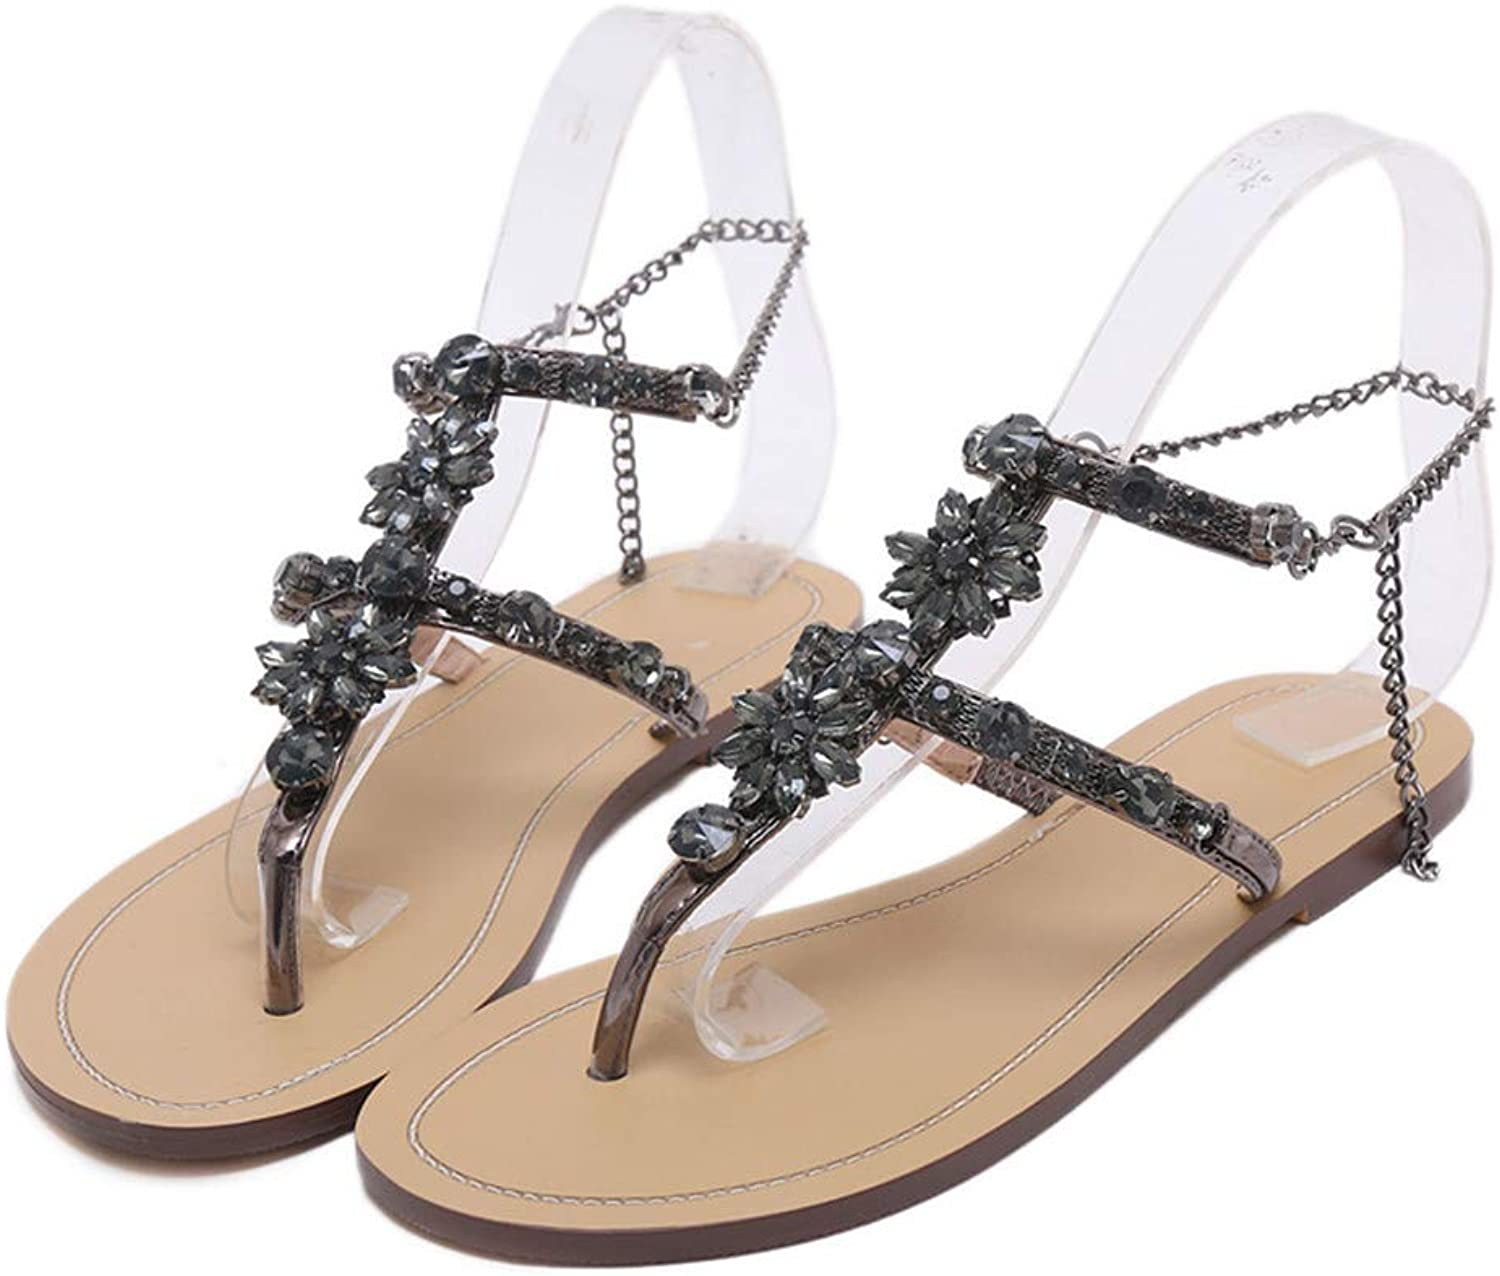 Zipong 2019 Woman Sandals Women shoes Rhinestones Chains Thong Gladiator Crystal Flat Heels Sandals